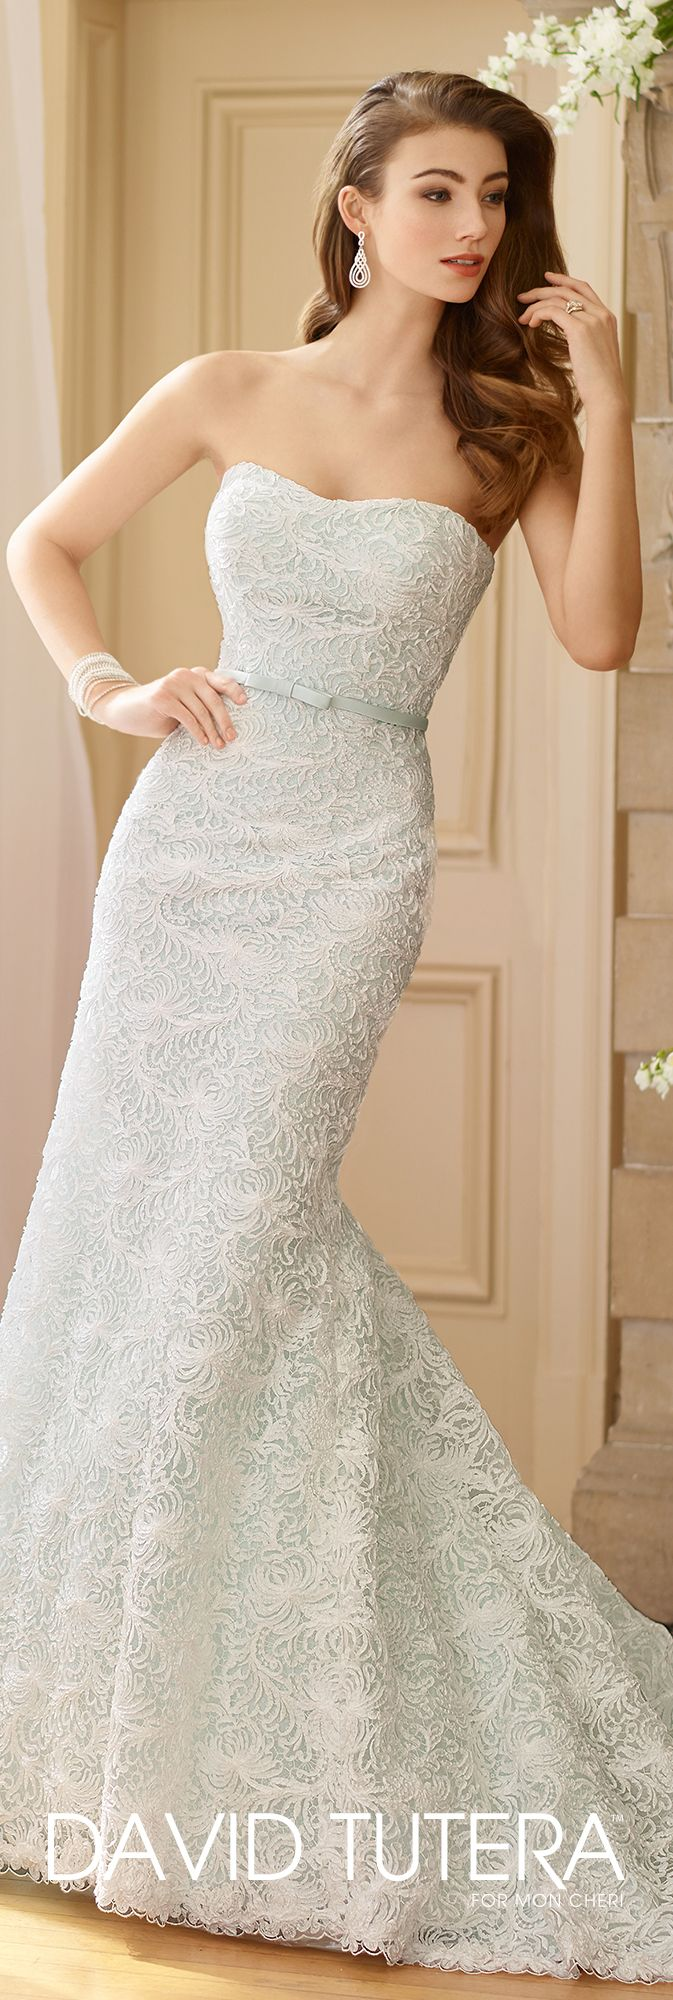 David Tutera for Mon Cheri Fall  2017 Collection - Style No. 217216 Lottie - strapless embroidered lace and sequin over satin fit and flare wedding dress in Diamond White/Mist